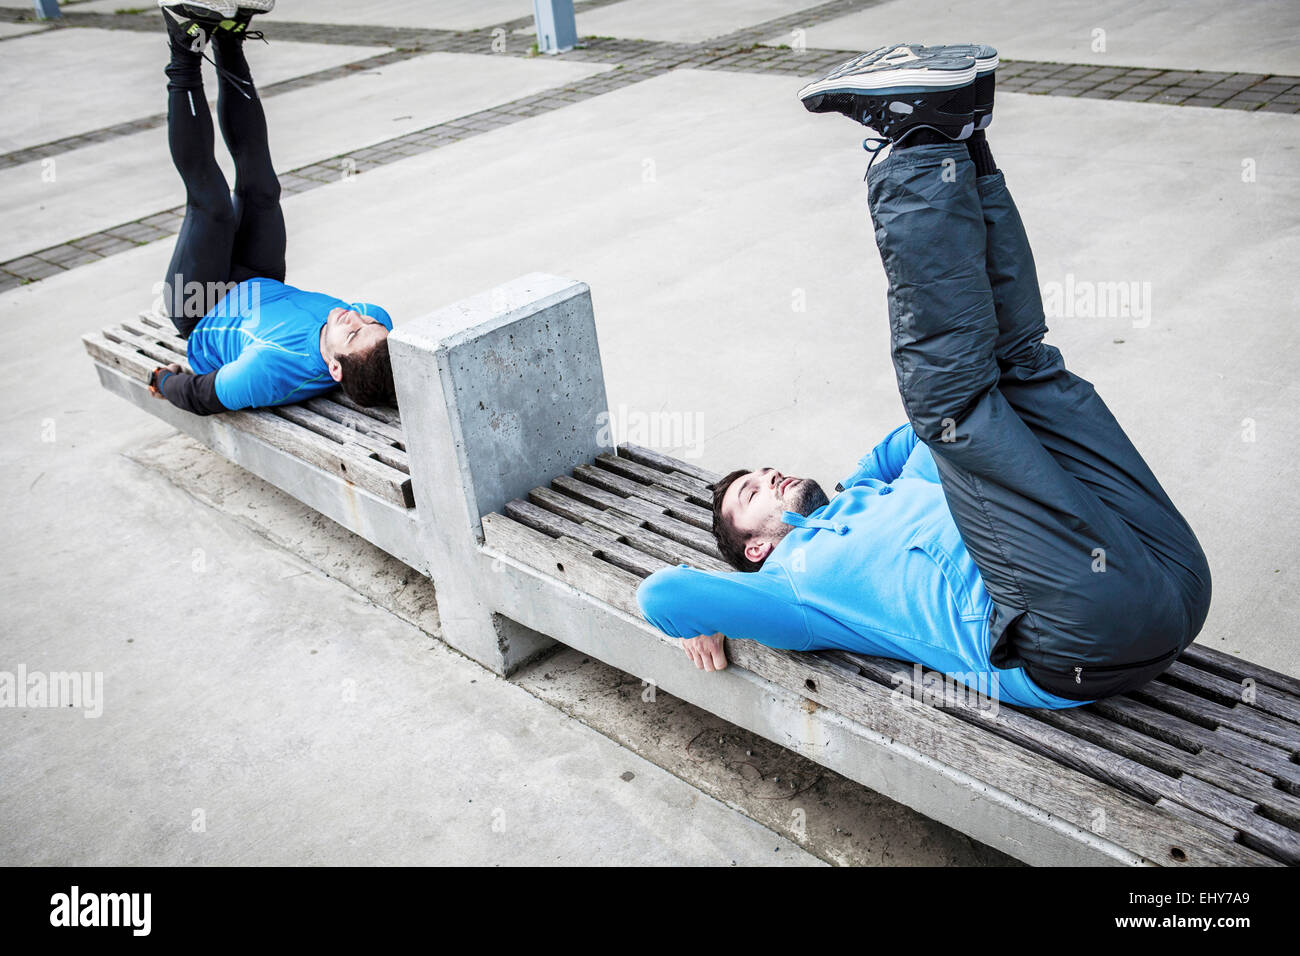 Male runners stretching and warming up in city - Stock Image